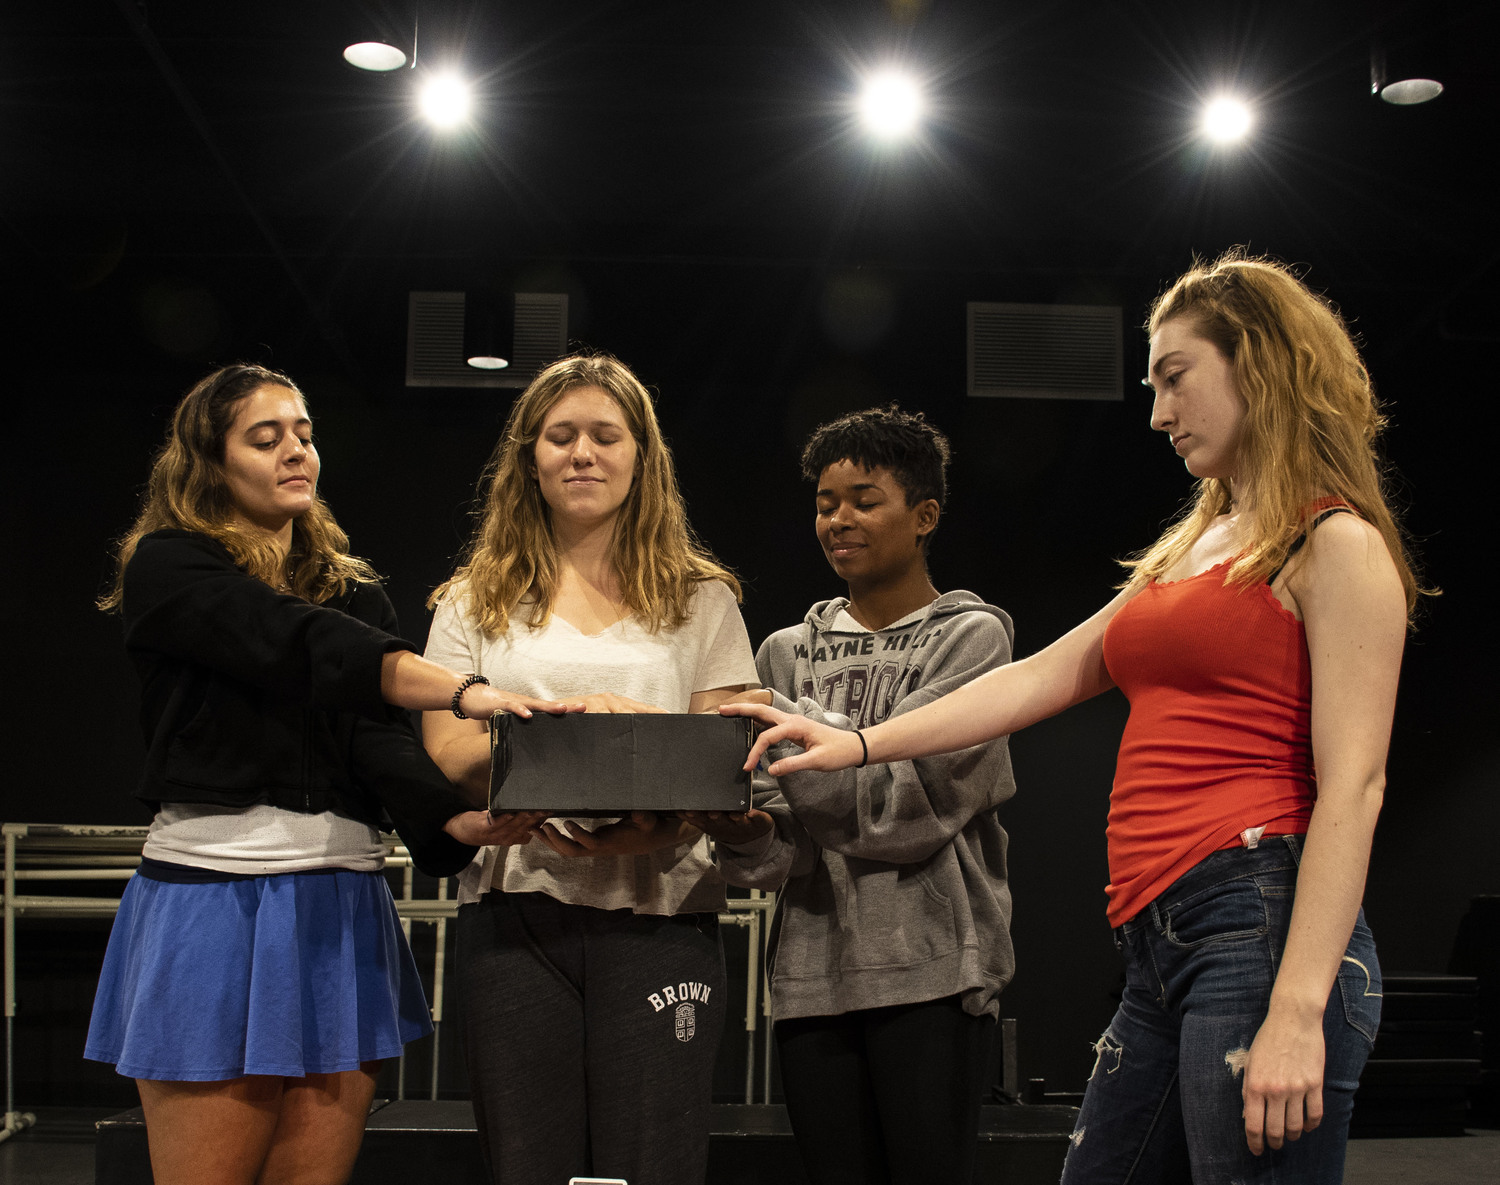 BWW Review: A Blast to the Past in THE SHOEBOX